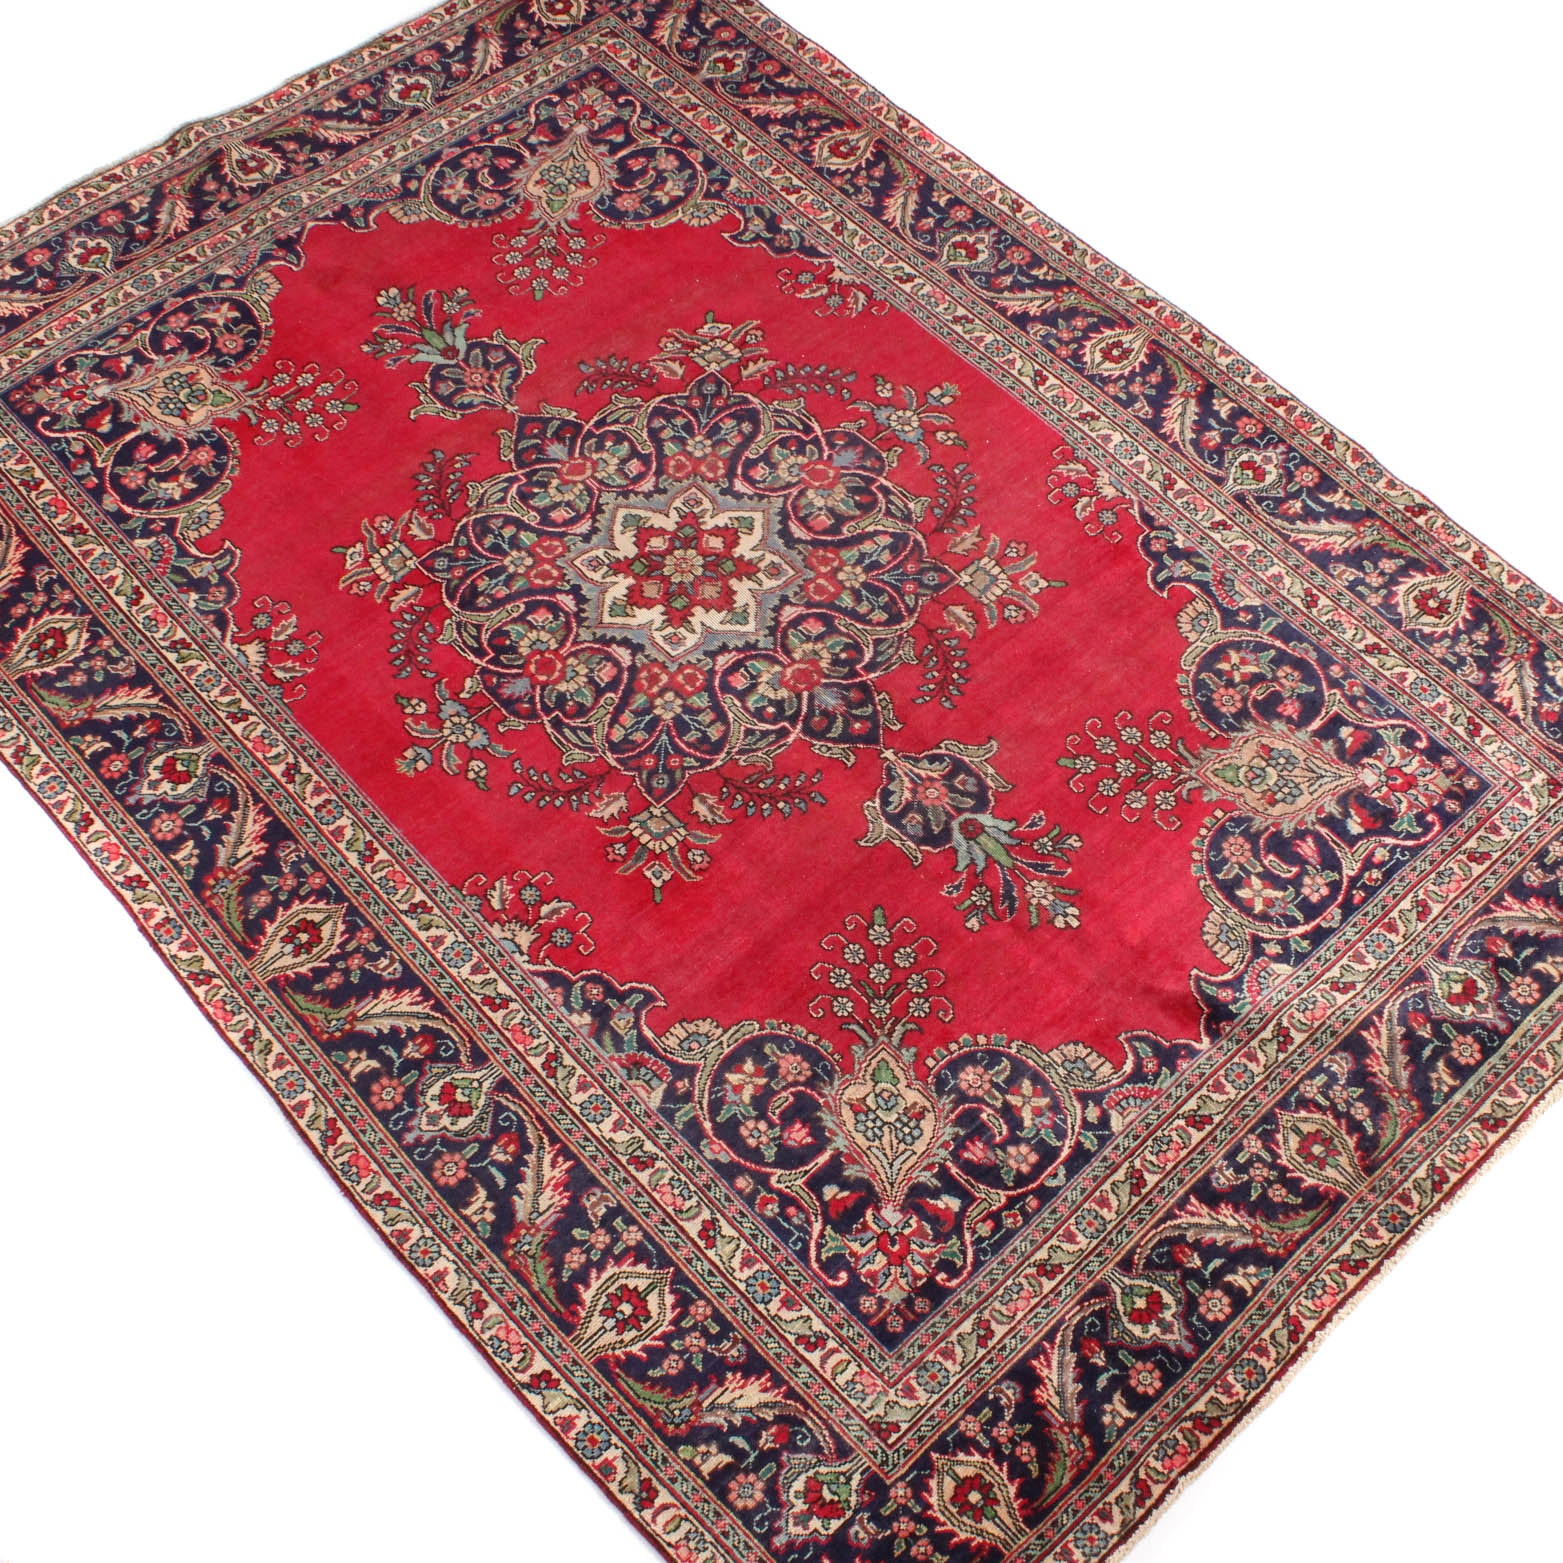 7' x 10' Vintage Hand-Knotted Persian Qum Room Size Rug